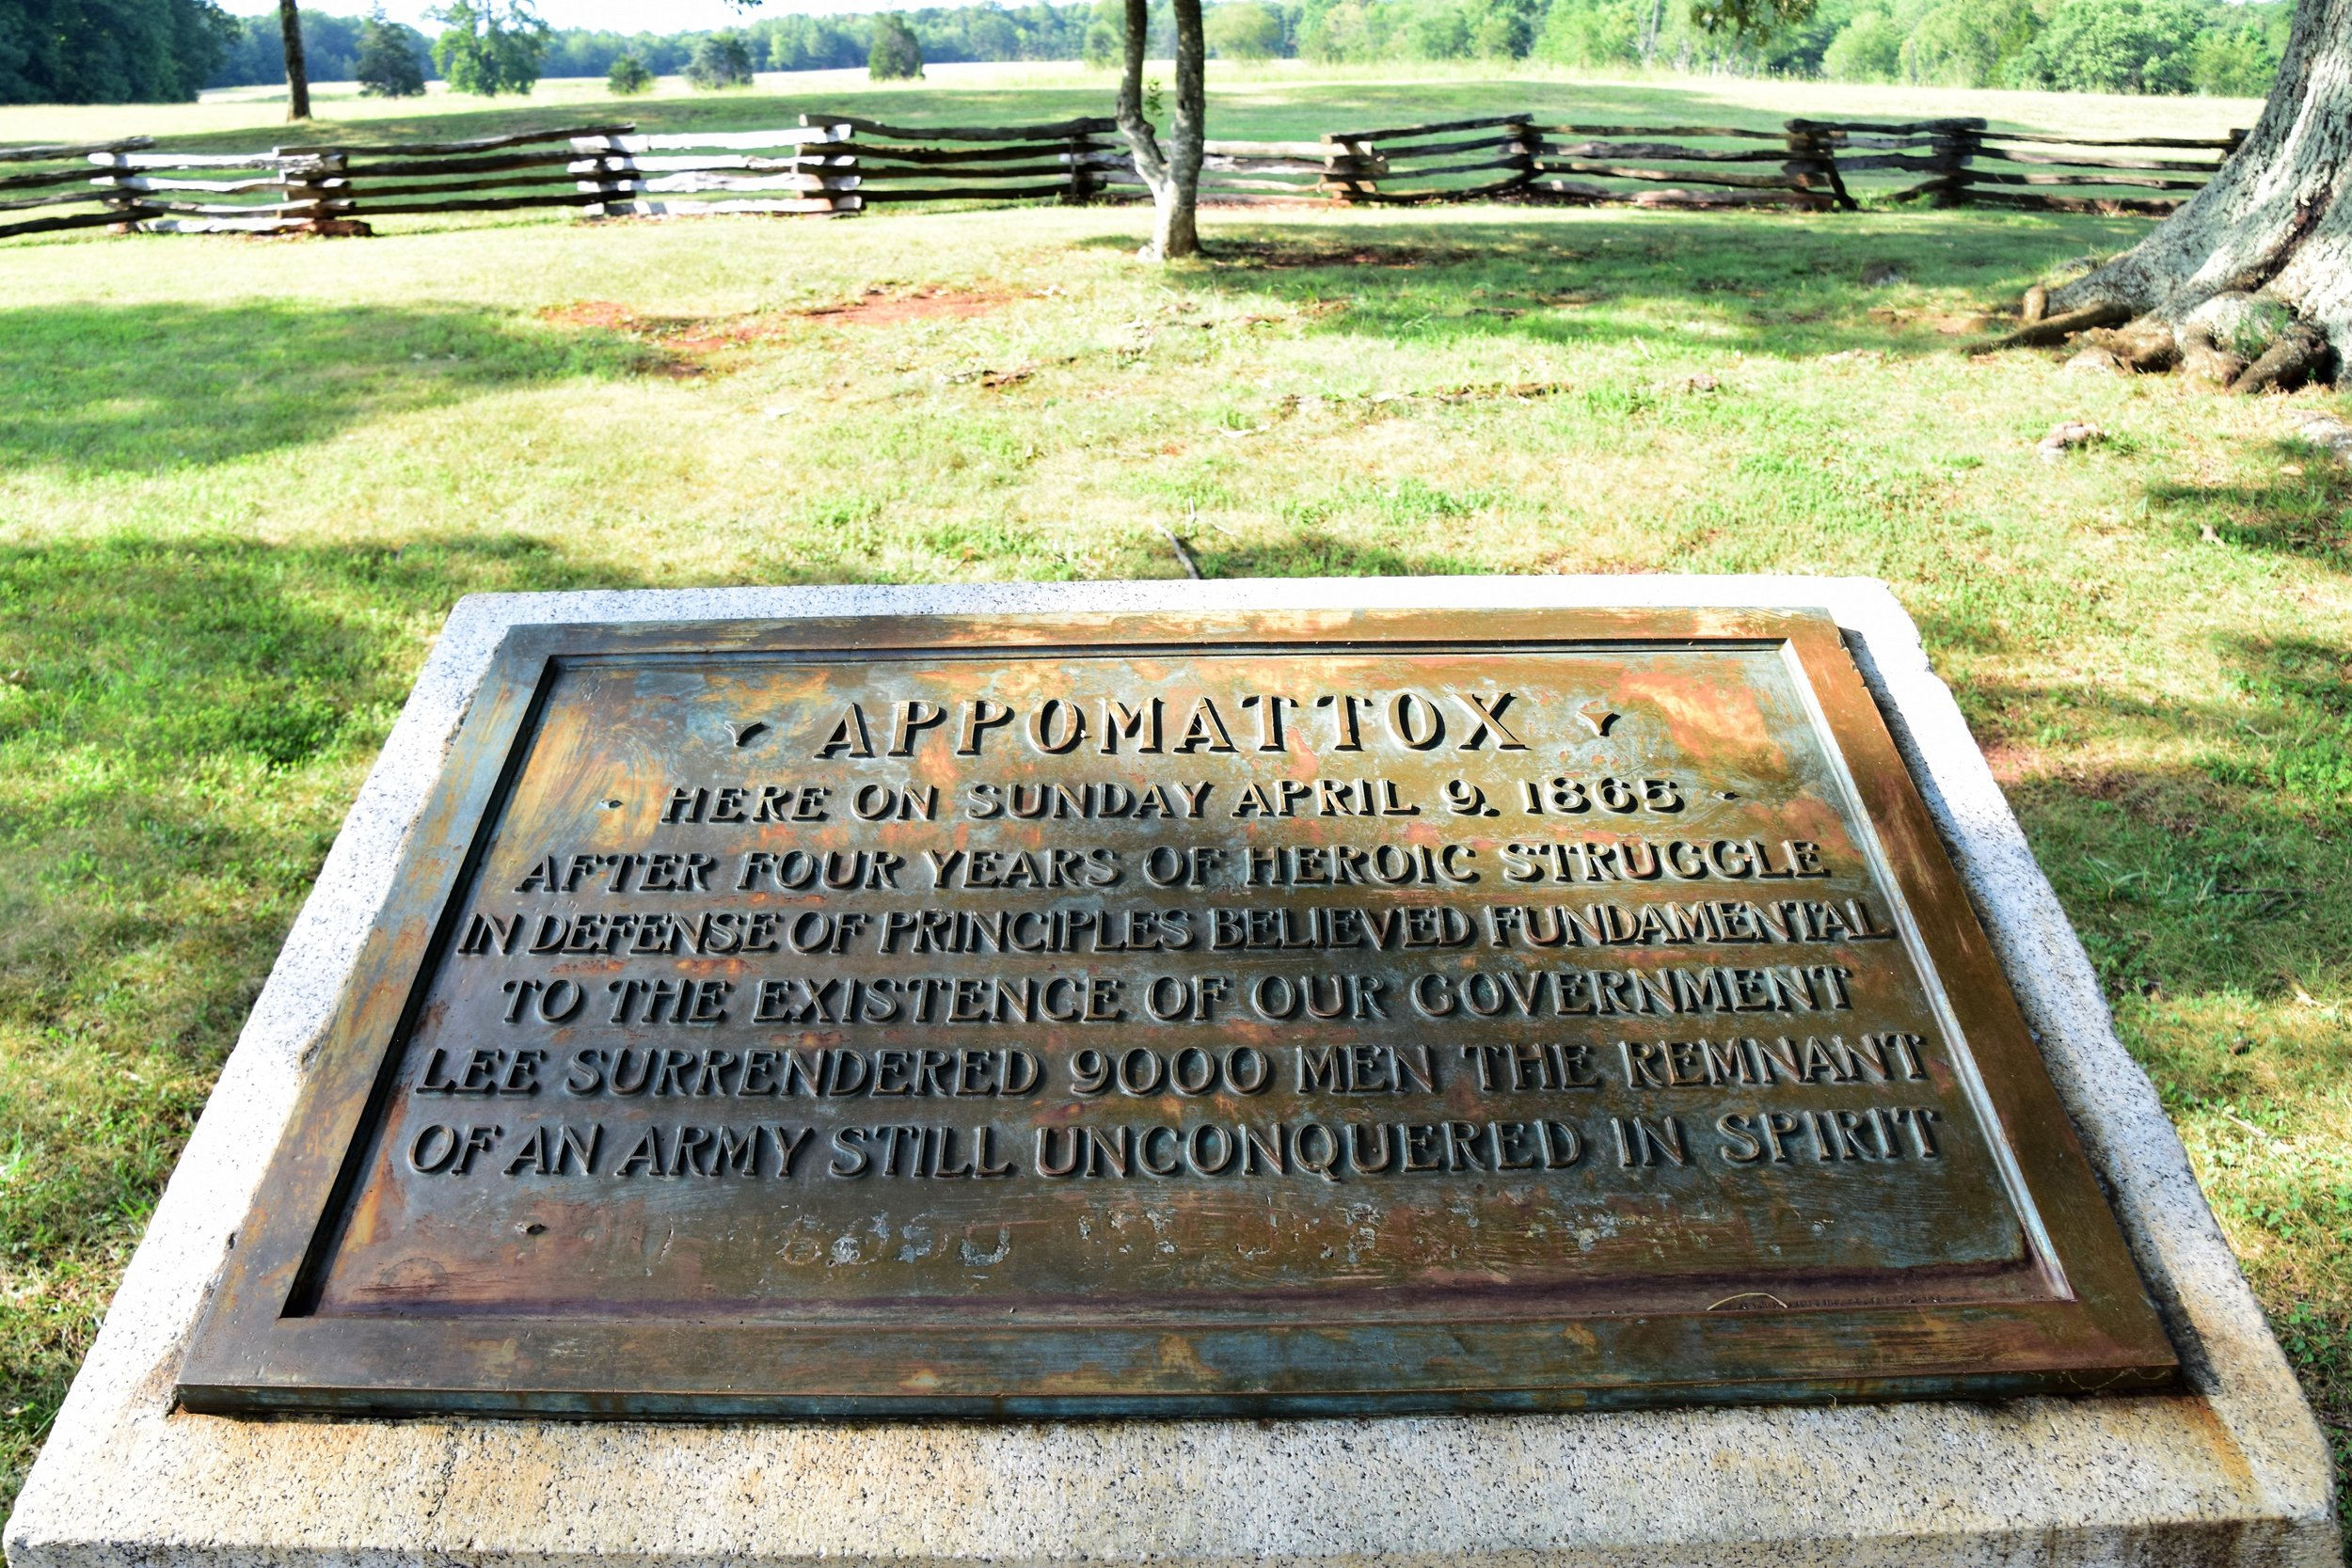 Appomattox Courthouse, Virginia